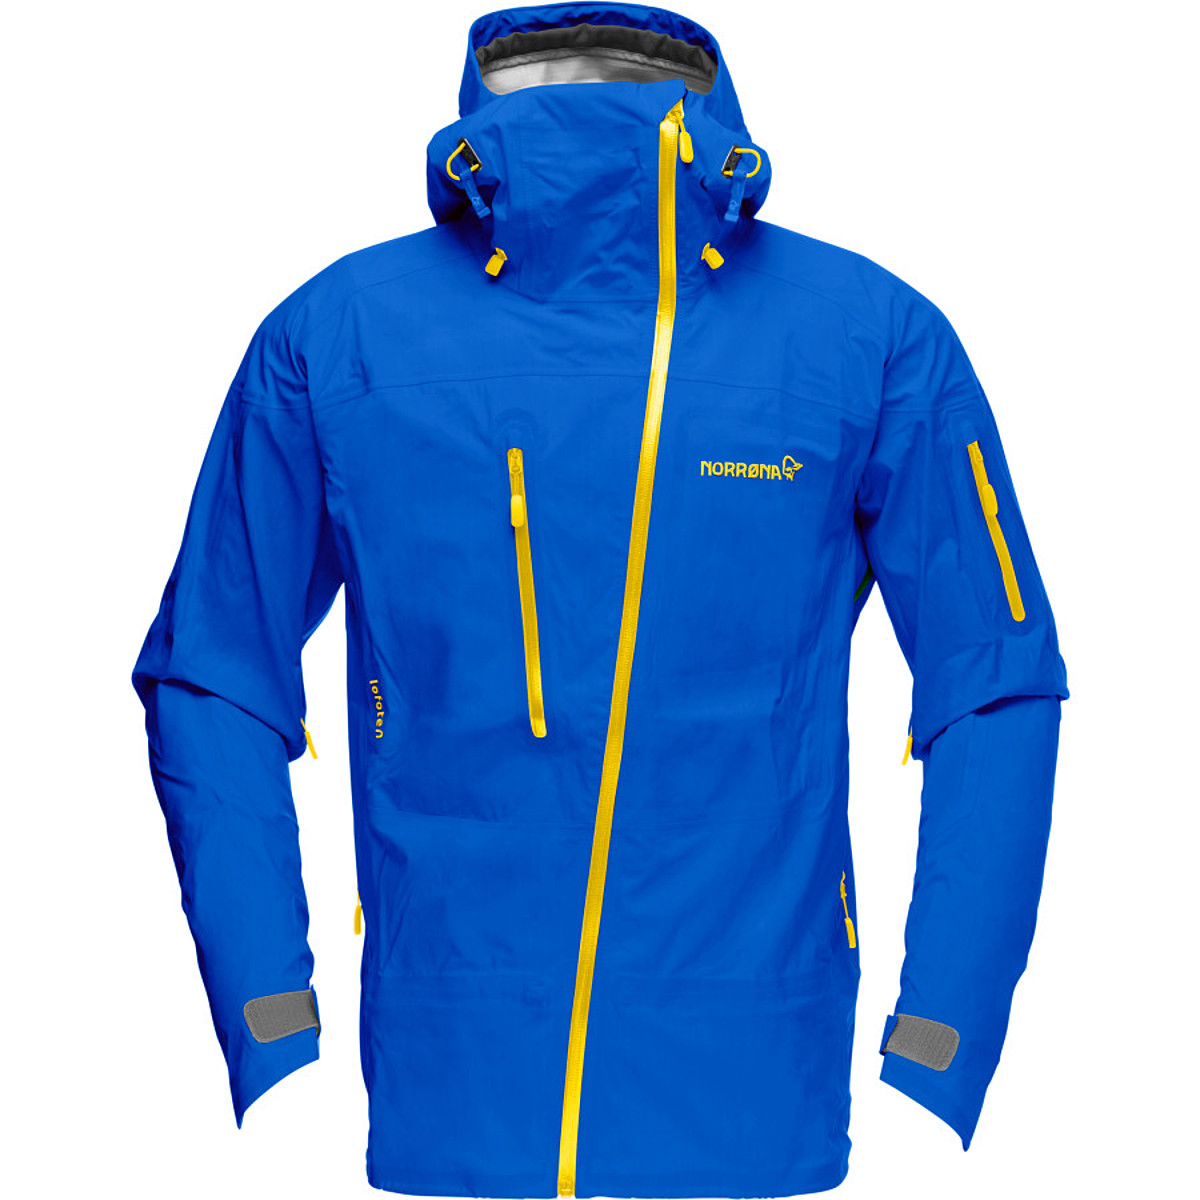 Norrona Lofoten Gore-Tex Active Shell Jacket